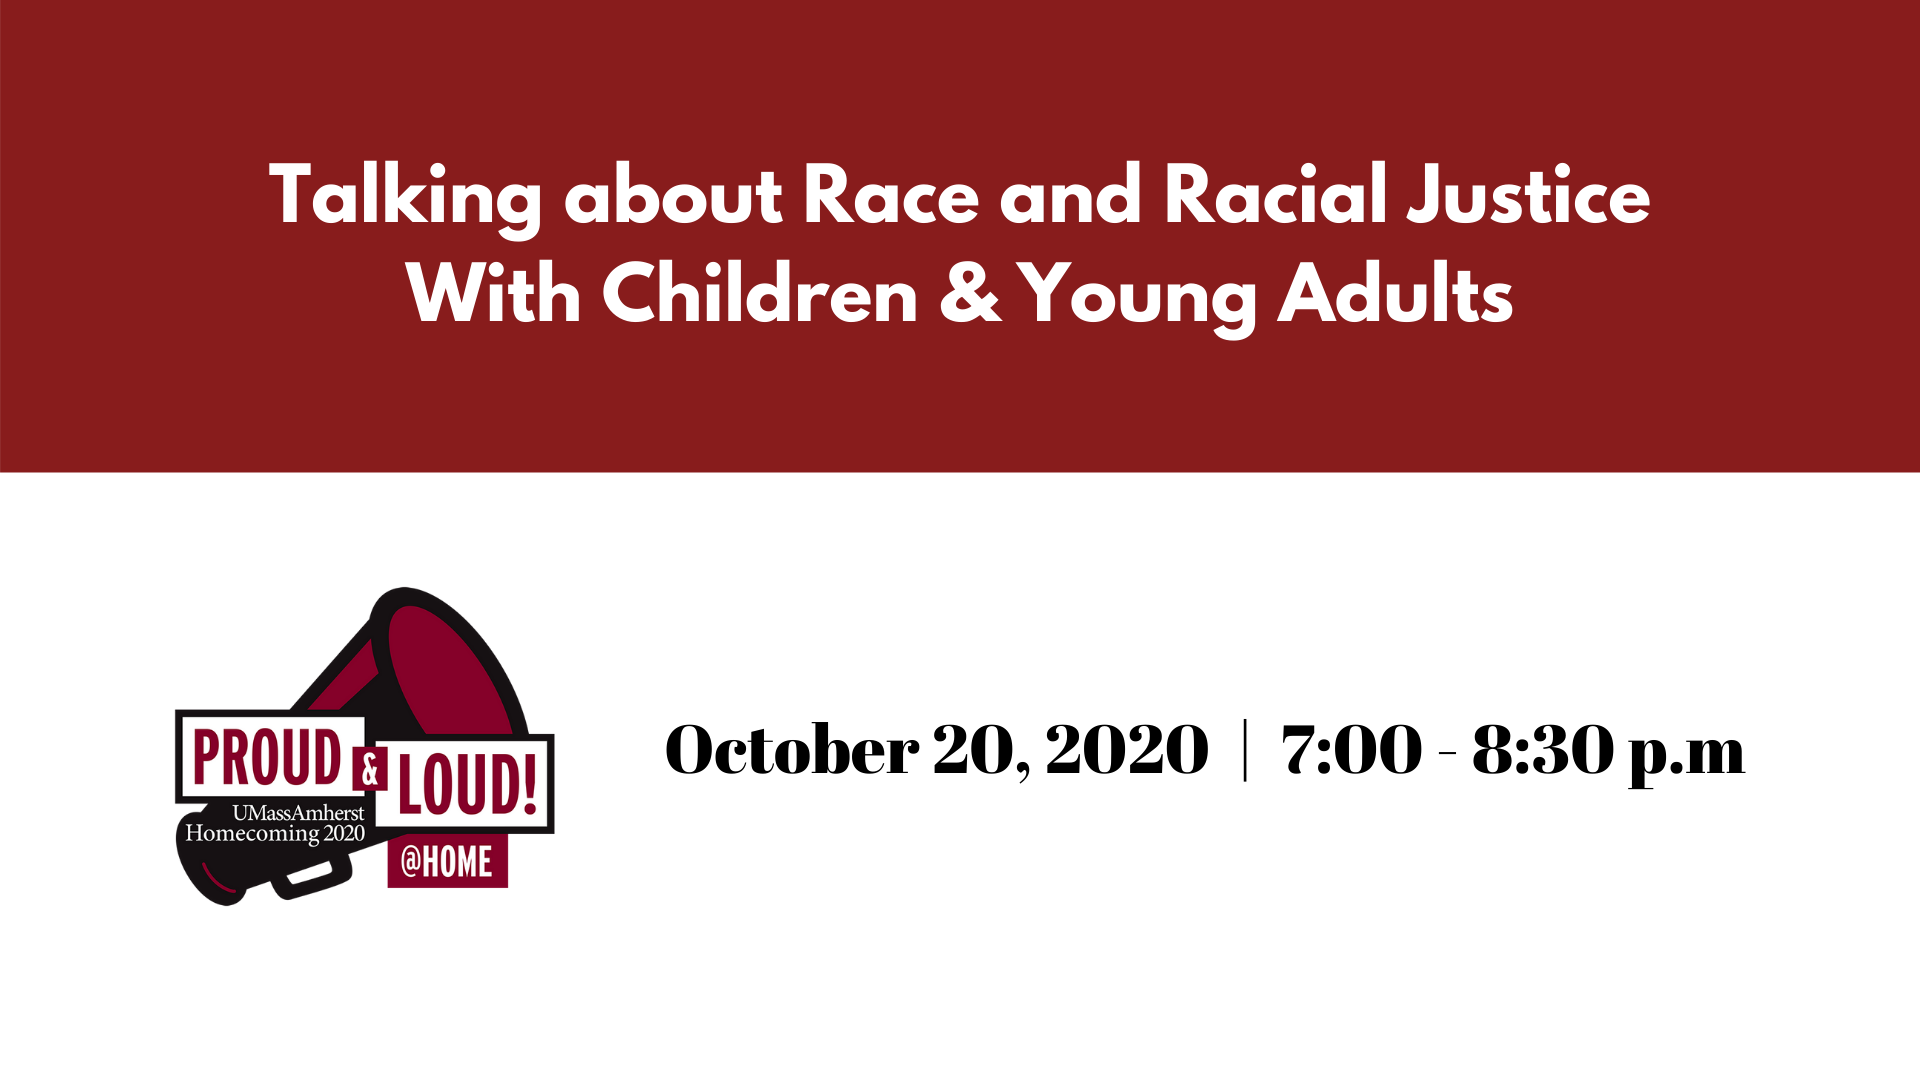 Talking About Race and Racial Justice With Children and Young Adults